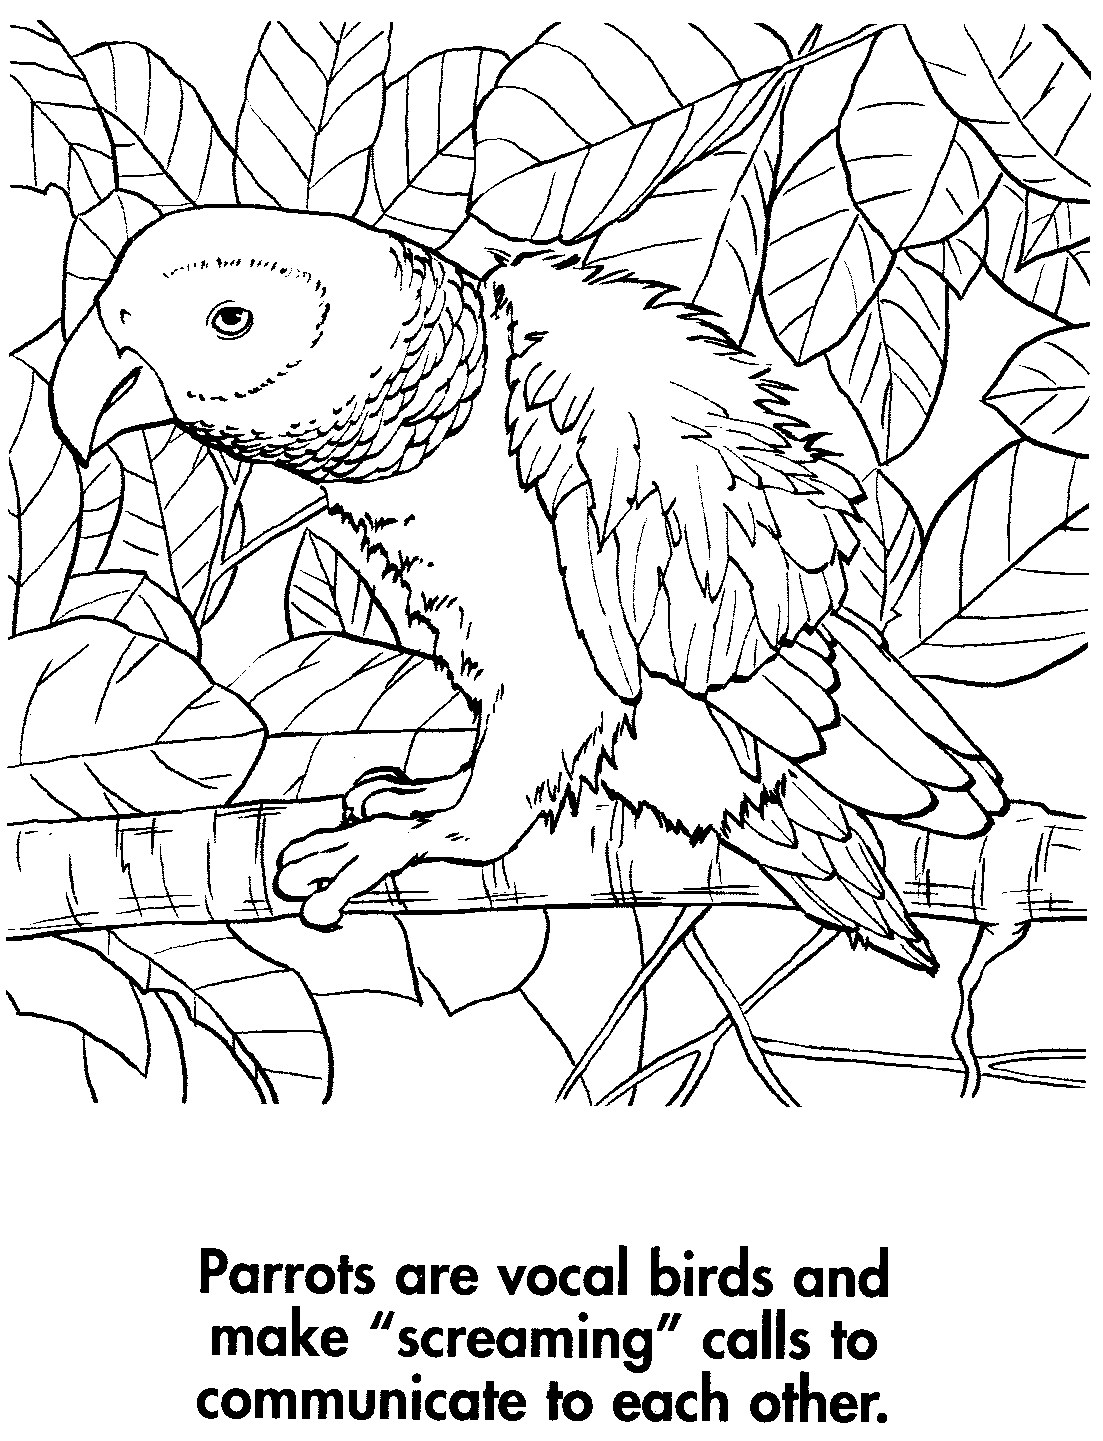 Sport life planet earth coloring book awesome animals 95 for Animal planet coloring pages